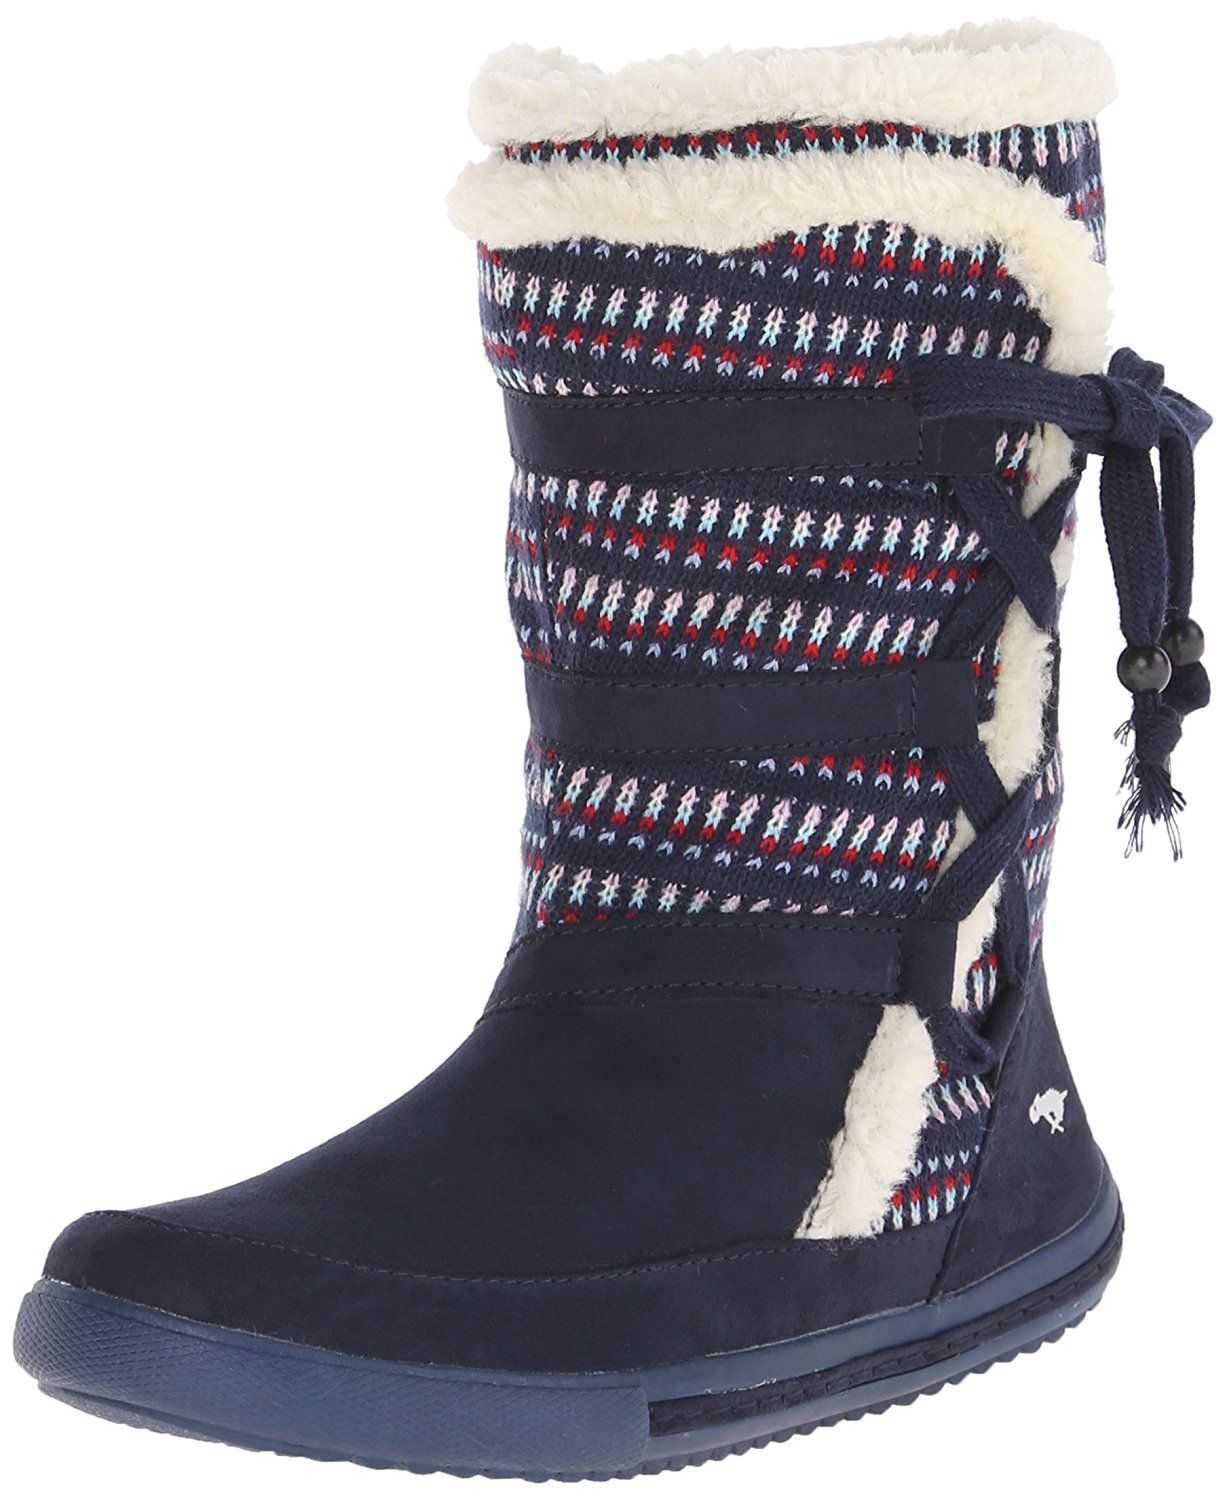 Womens Boots Rocket Dog Palmetto Grey Ice Queen